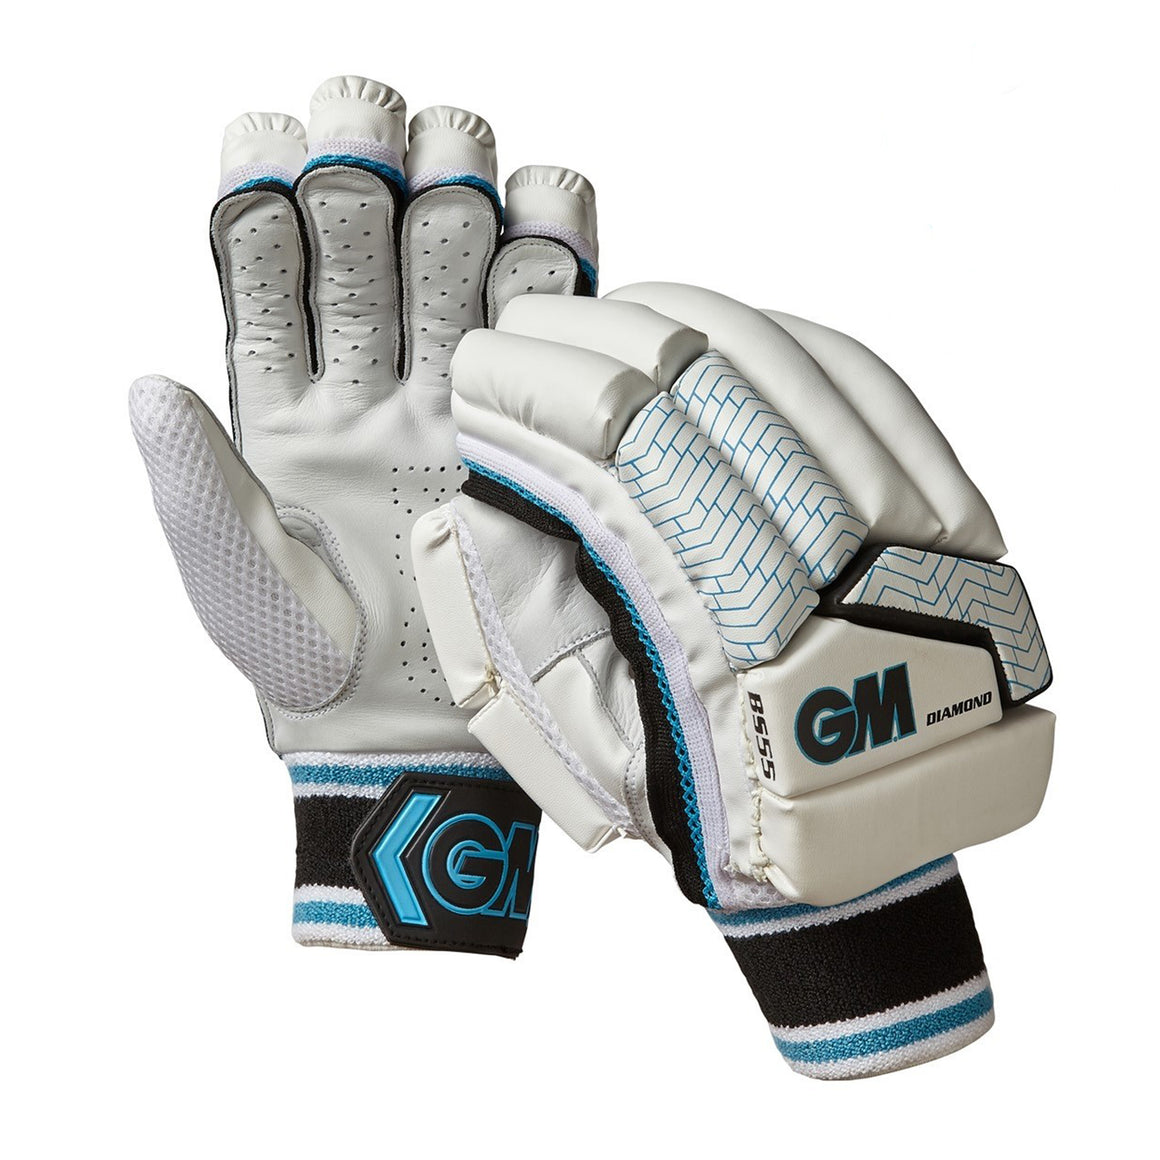 Diamond B555 R/H Batting Glove for Kids in White